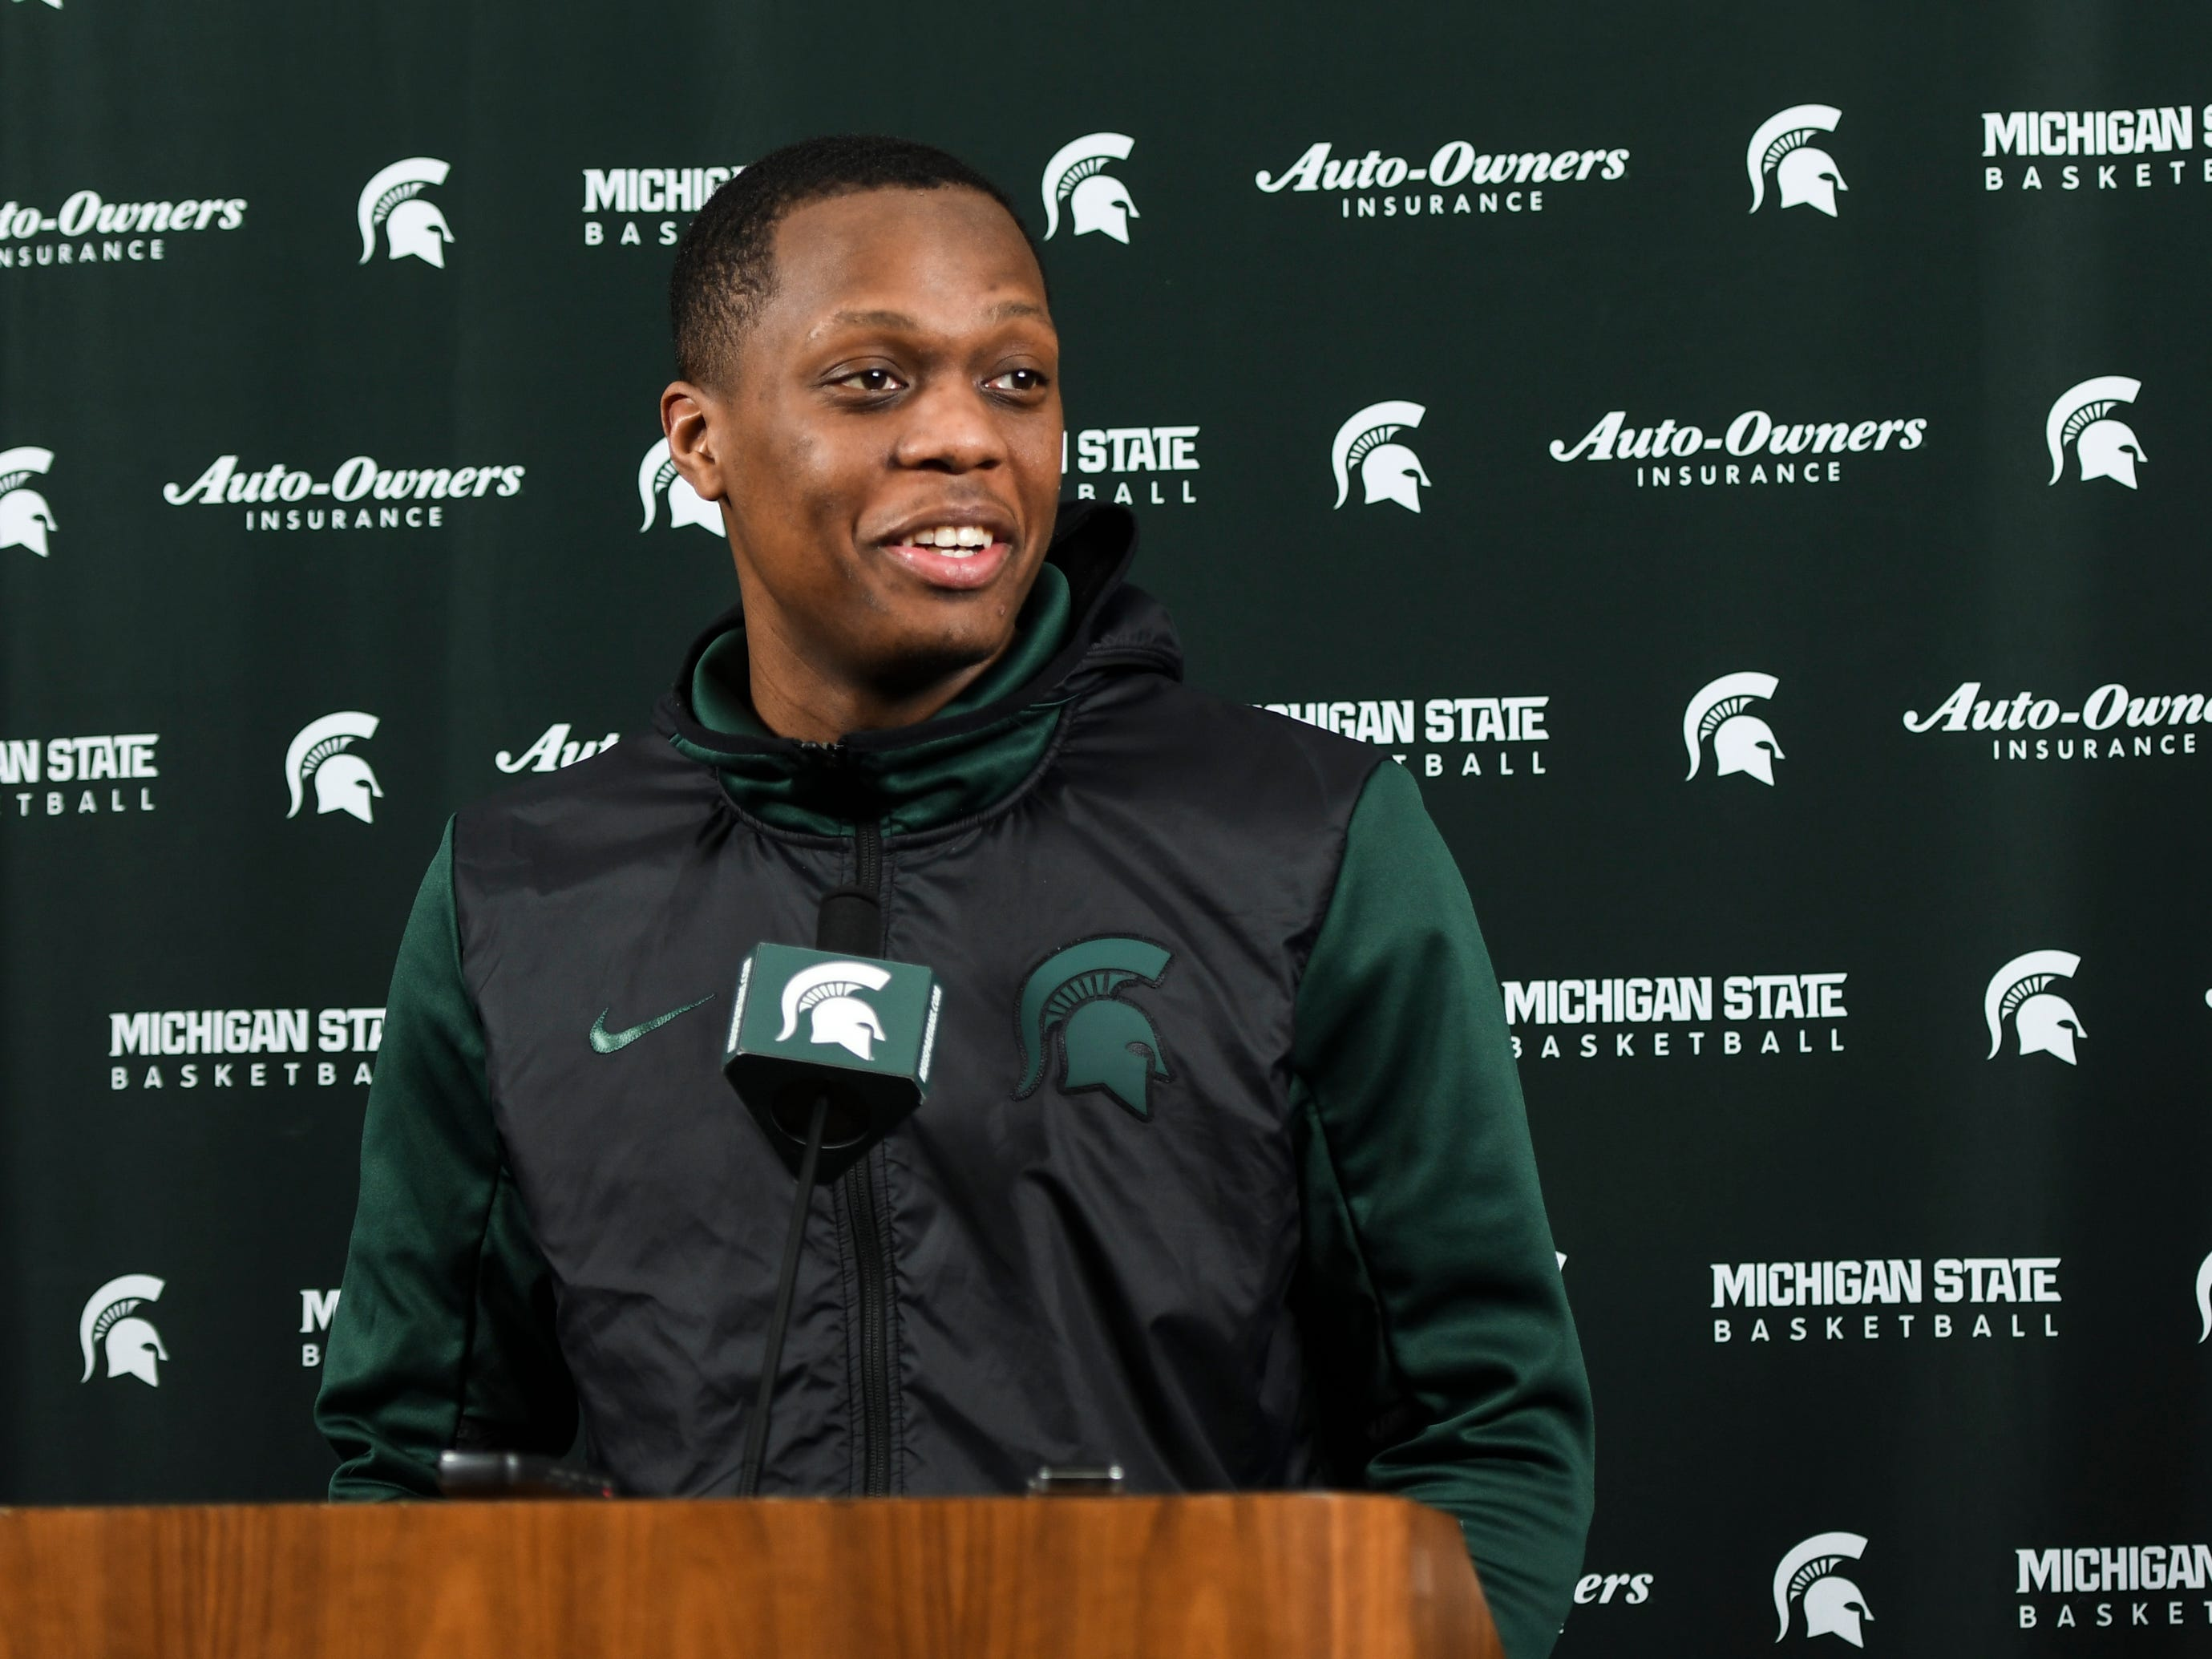 """""""It's a team game, the more you care about your players, your teammates, the better you're gonna be, you can be as talented as you want, but if you're not connected and you don't care about one another, it's not gonna carry you as far,"""" Michigan State point guard Cassius Winston said Tuesday, April 2, 2019, during a presser at the Breslin Center."""